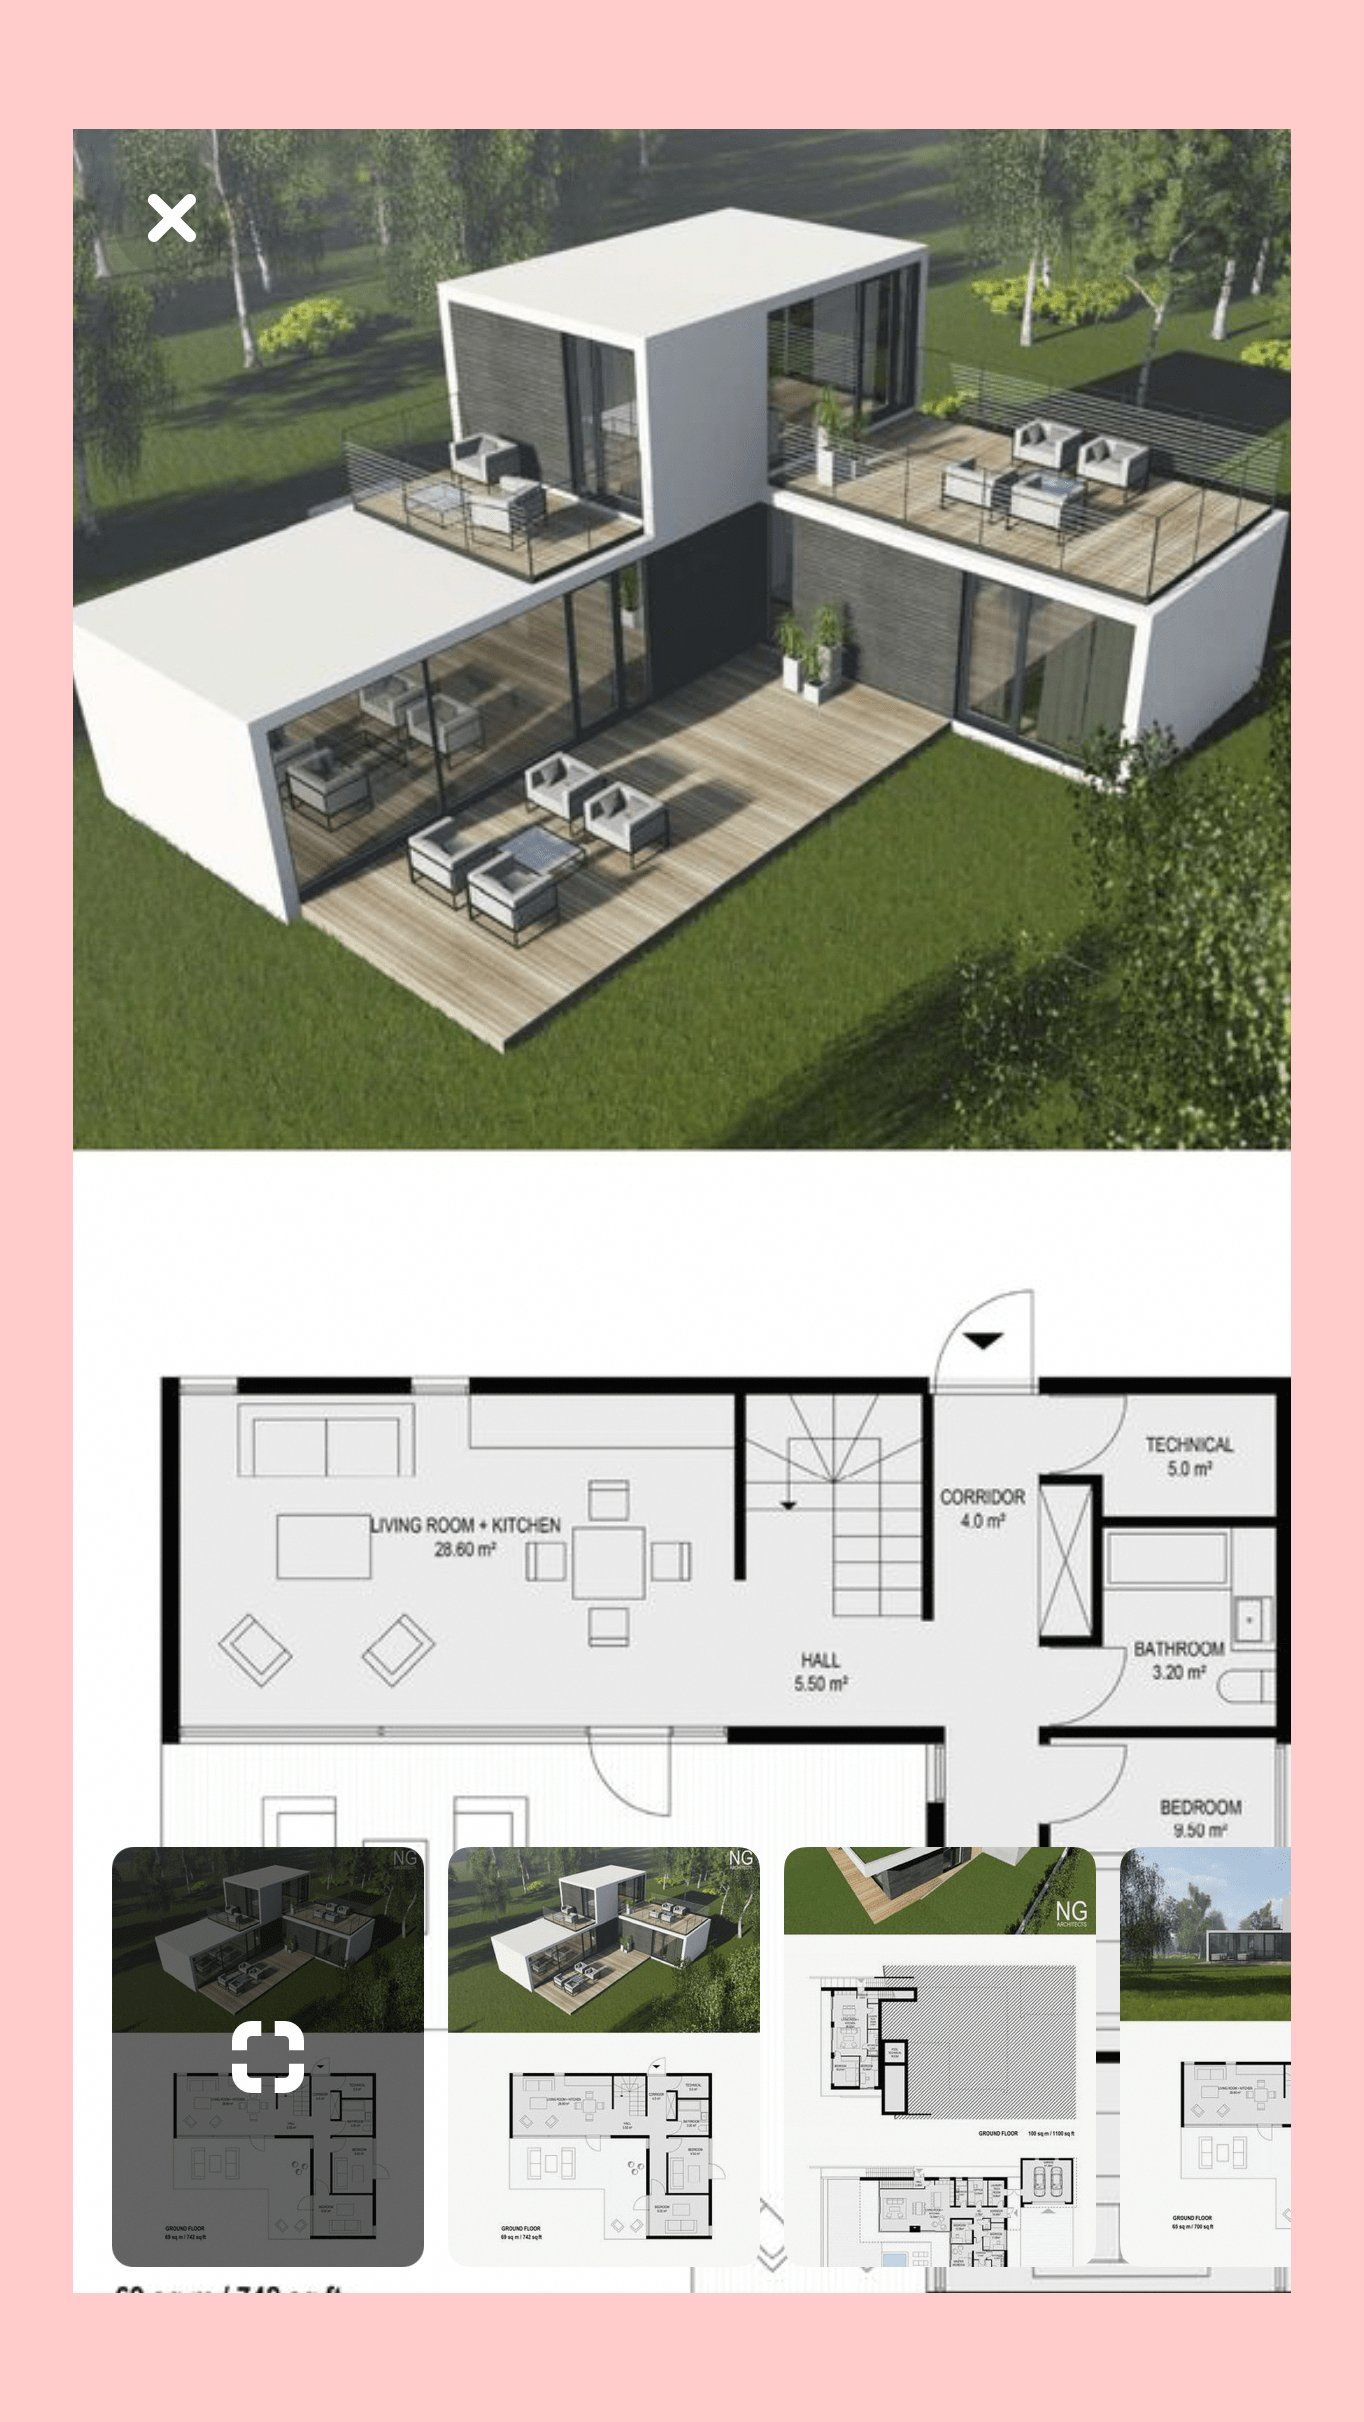 Simple Affordable Fall Entryway Home Fall Entryway House Welcome To Blog 4164 Container Home Designs Haus Außendesign Moderne Hausentwürfe